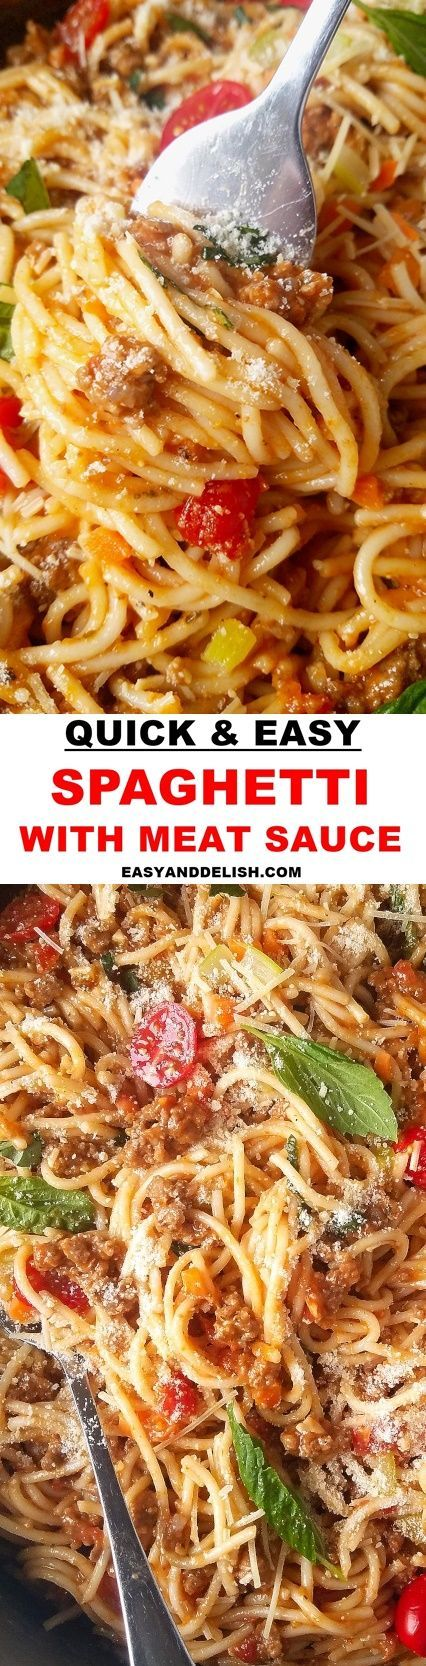 Make this spaghetti with ground beef and tomato sauce in less than 30 minutes. It is easy, comforting, budget-friendly and so delicious! Your family will love it! #pasta #groundbeef #dinnerrecipes #easyrecipes #quickrecipes